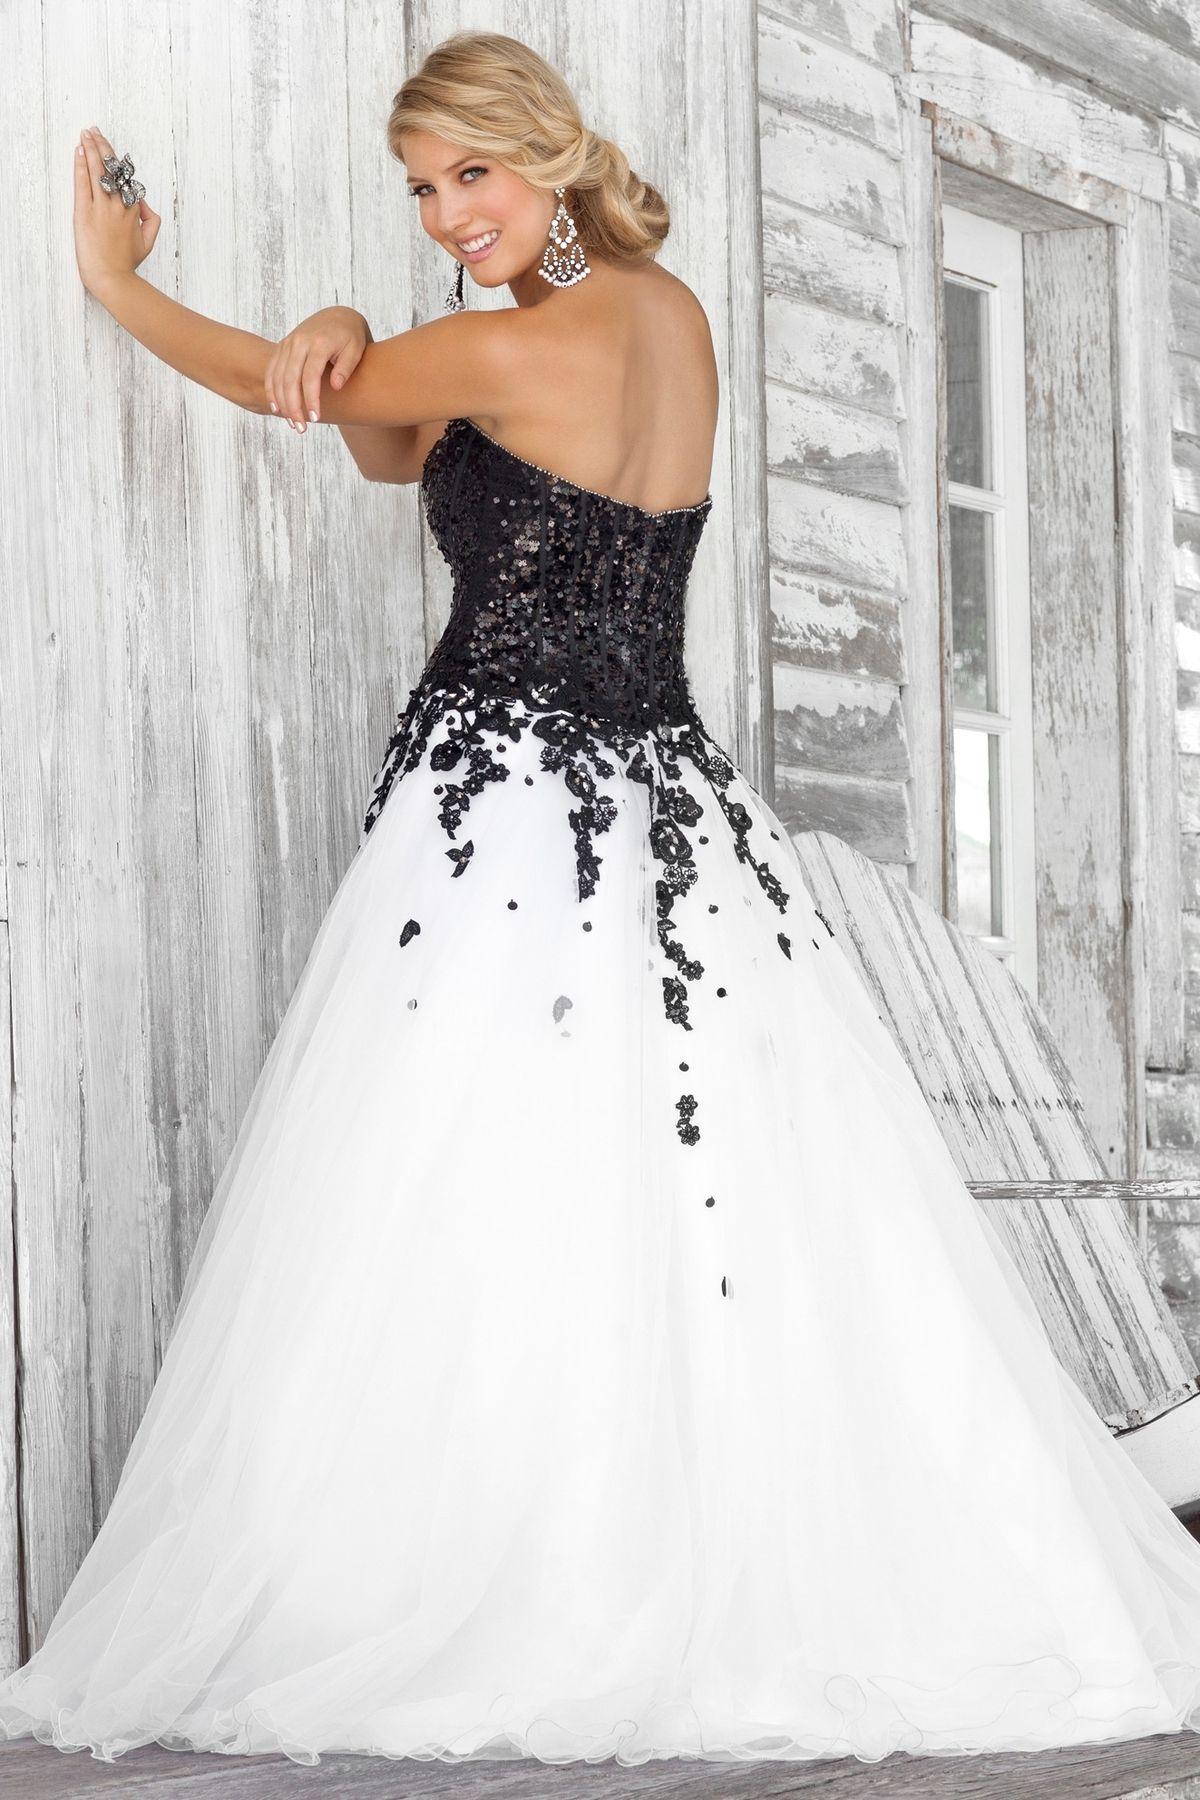 Black and White Wedding Dresses & Gowns Collection | Modern ...